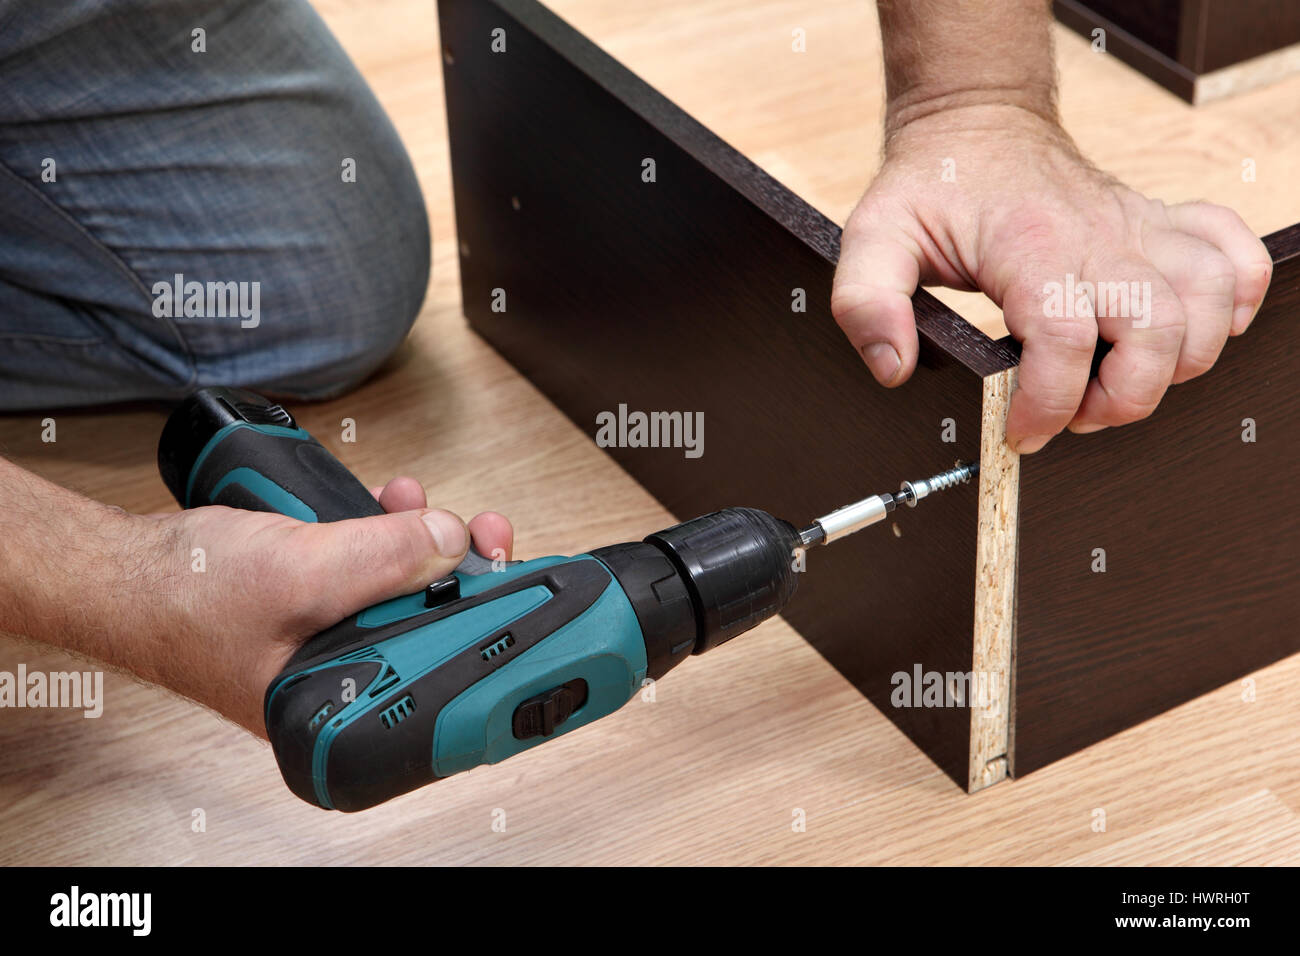 Assembling furniture from chipboard, Woodworker  screwing Chipboard screws using a cordless screwdriver. - Stock Image